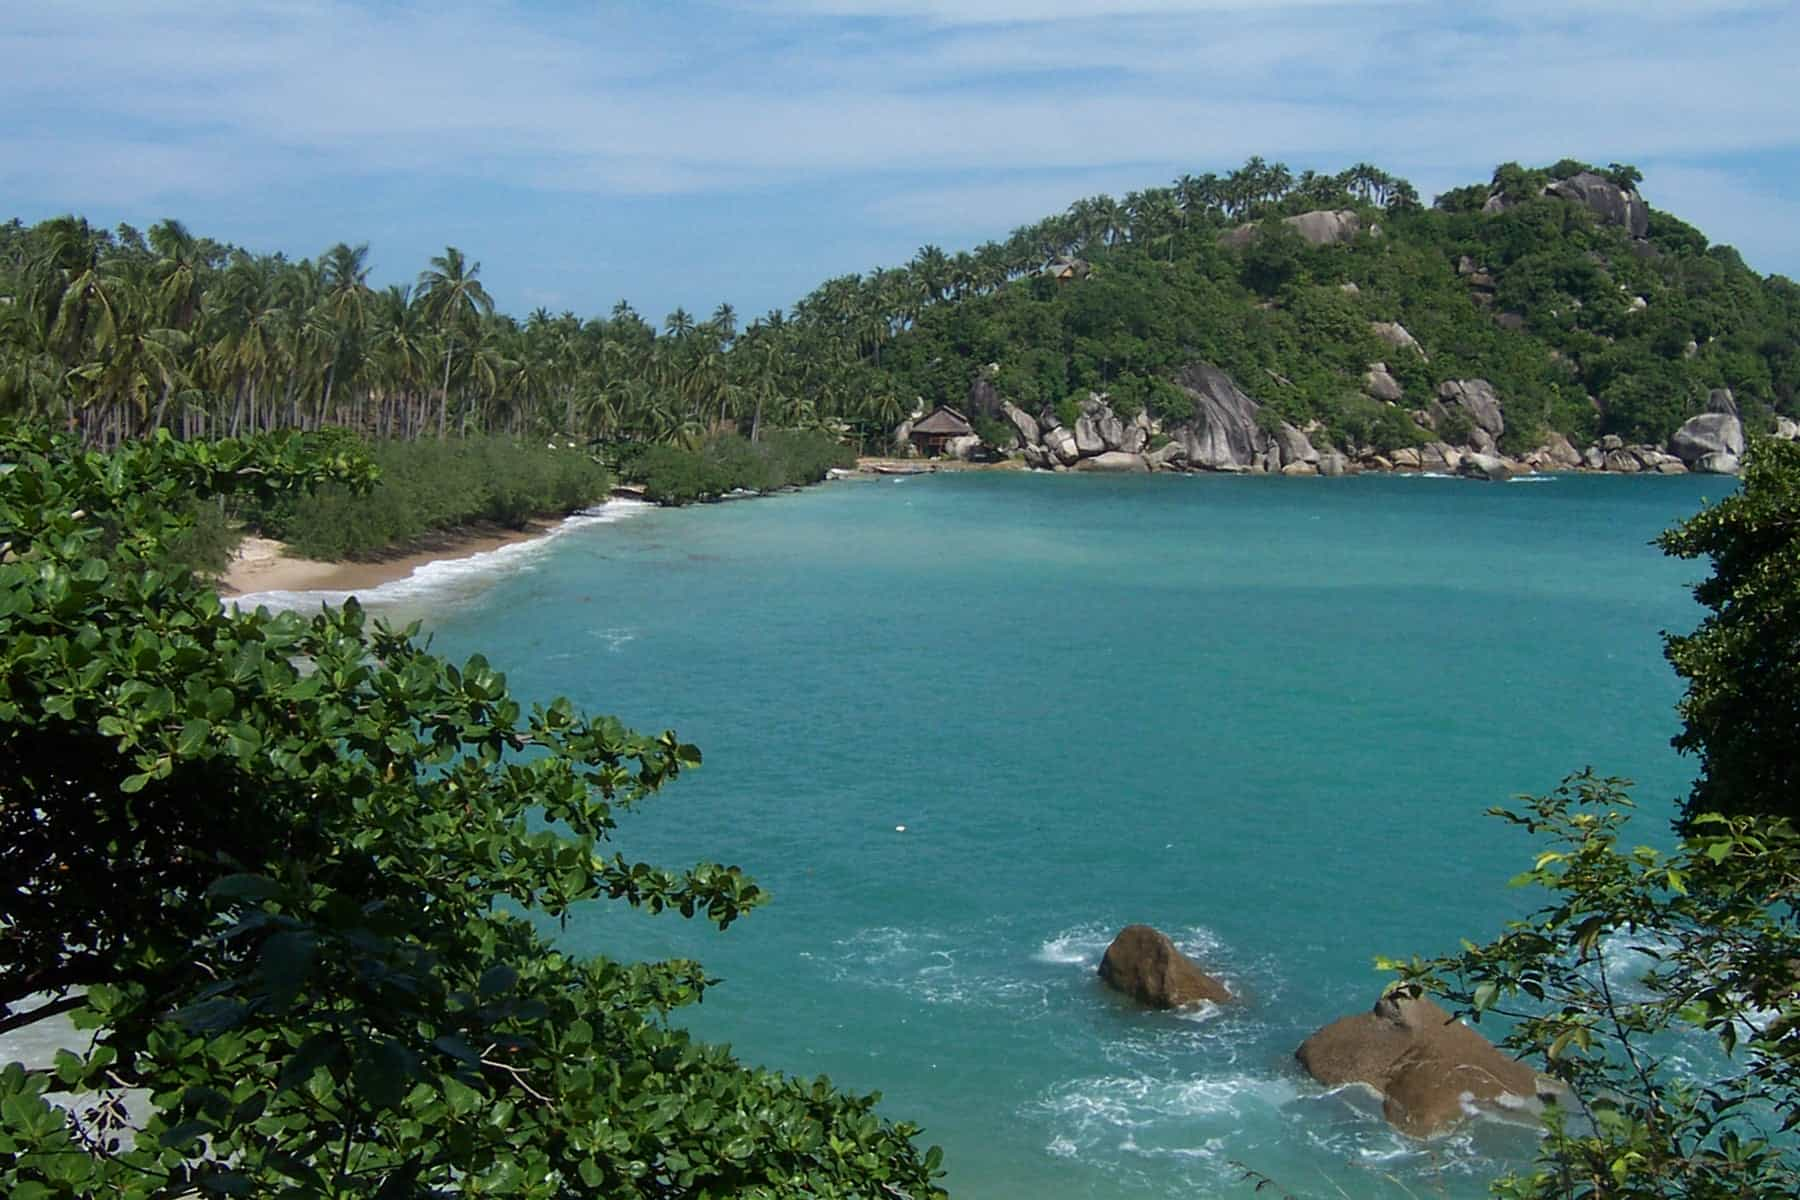 Koh Phangan - Home of the Famous Full Moon Party